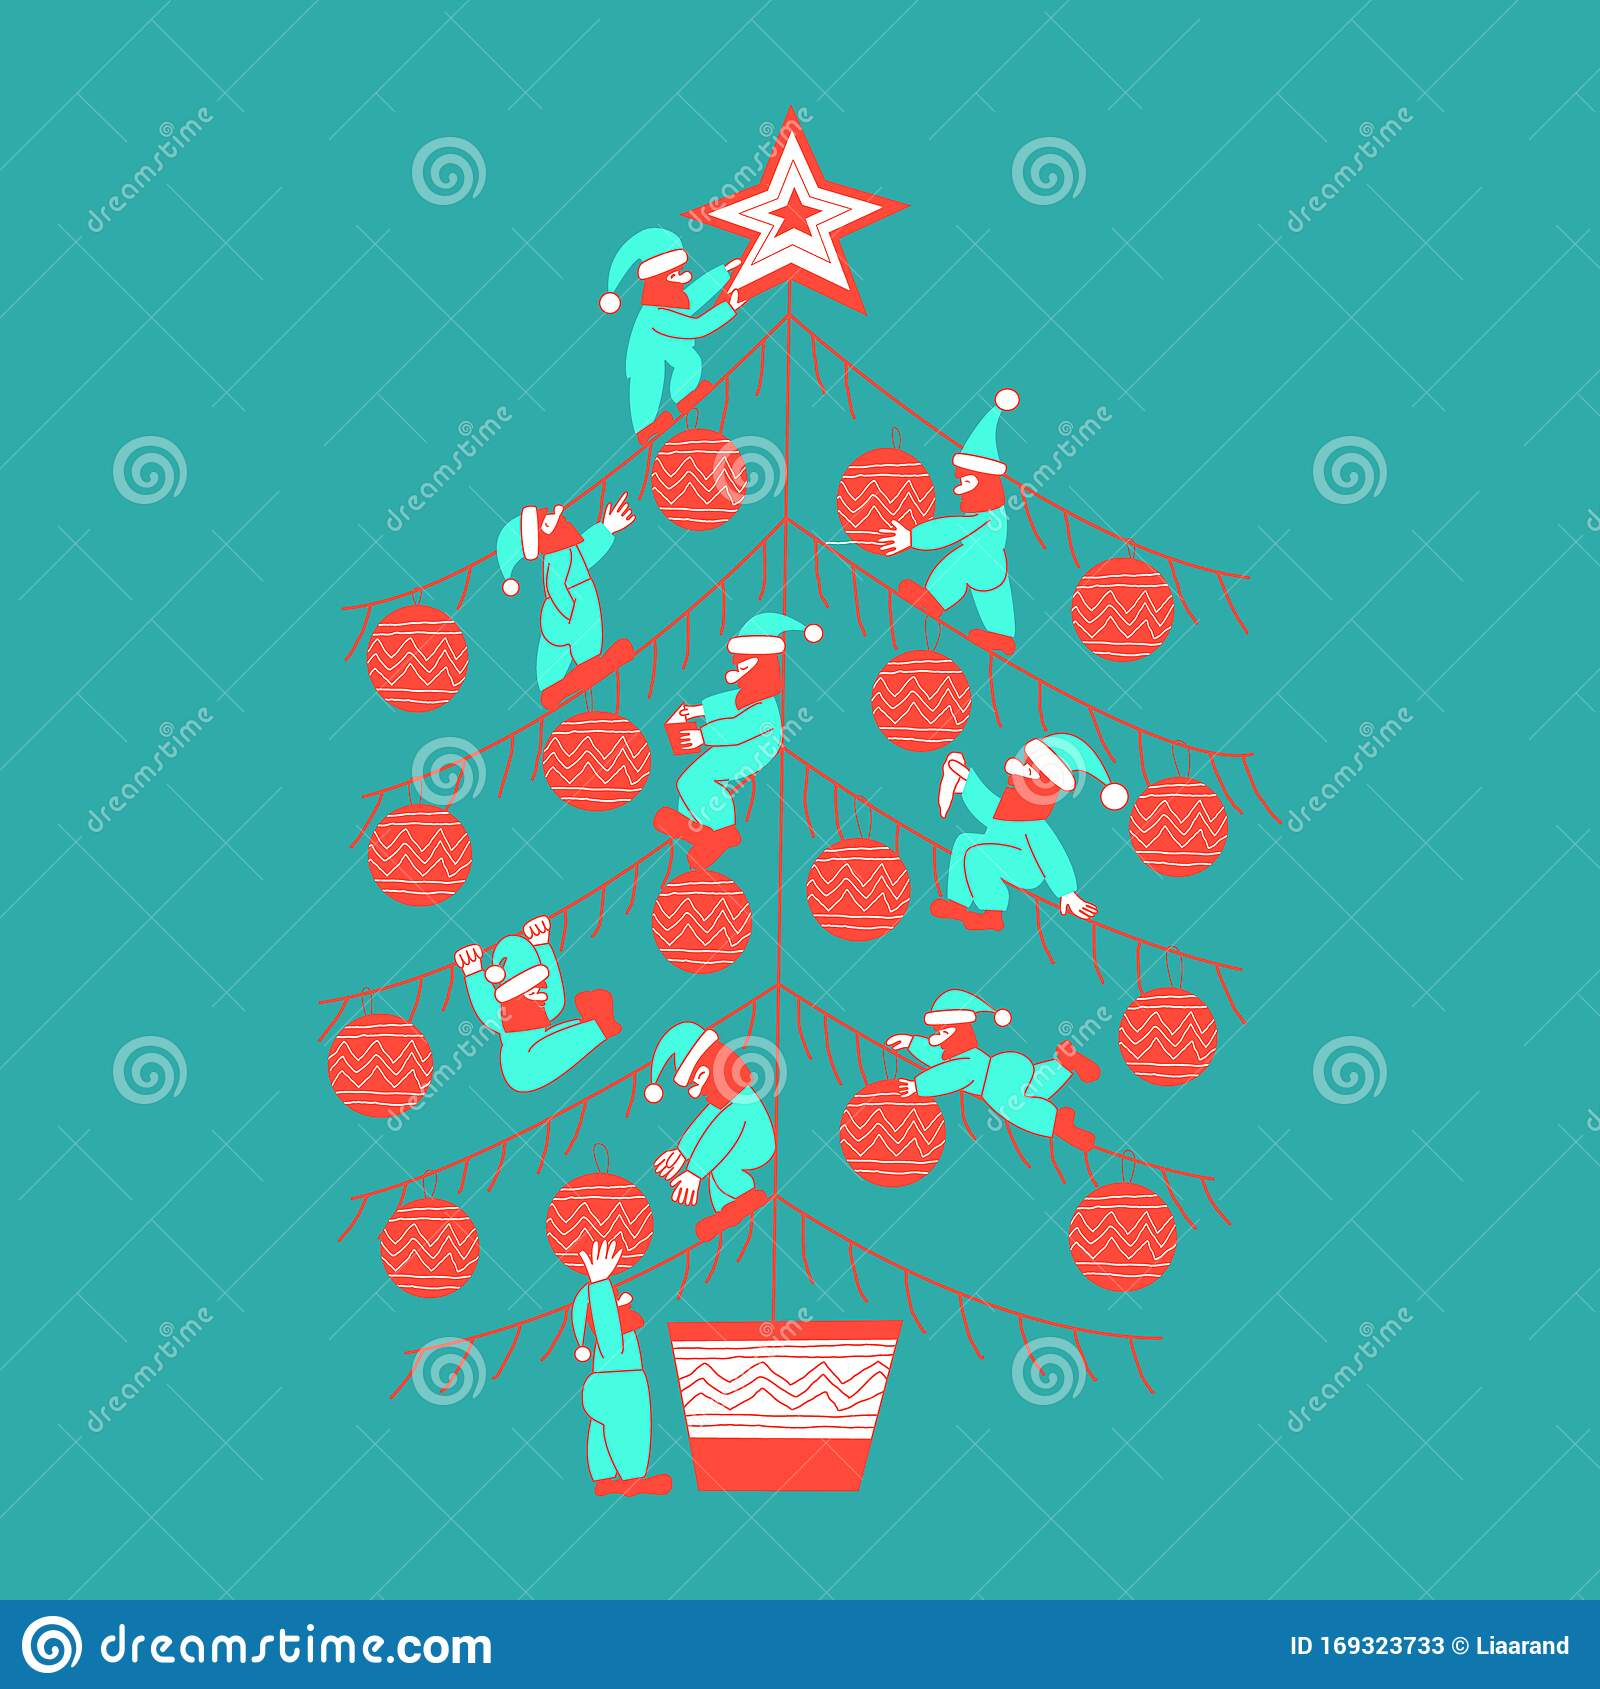 Christmas Tree Decorated With Scandinavian Gnomes Stock Vector Illustration Of Icon Leaf 169323733